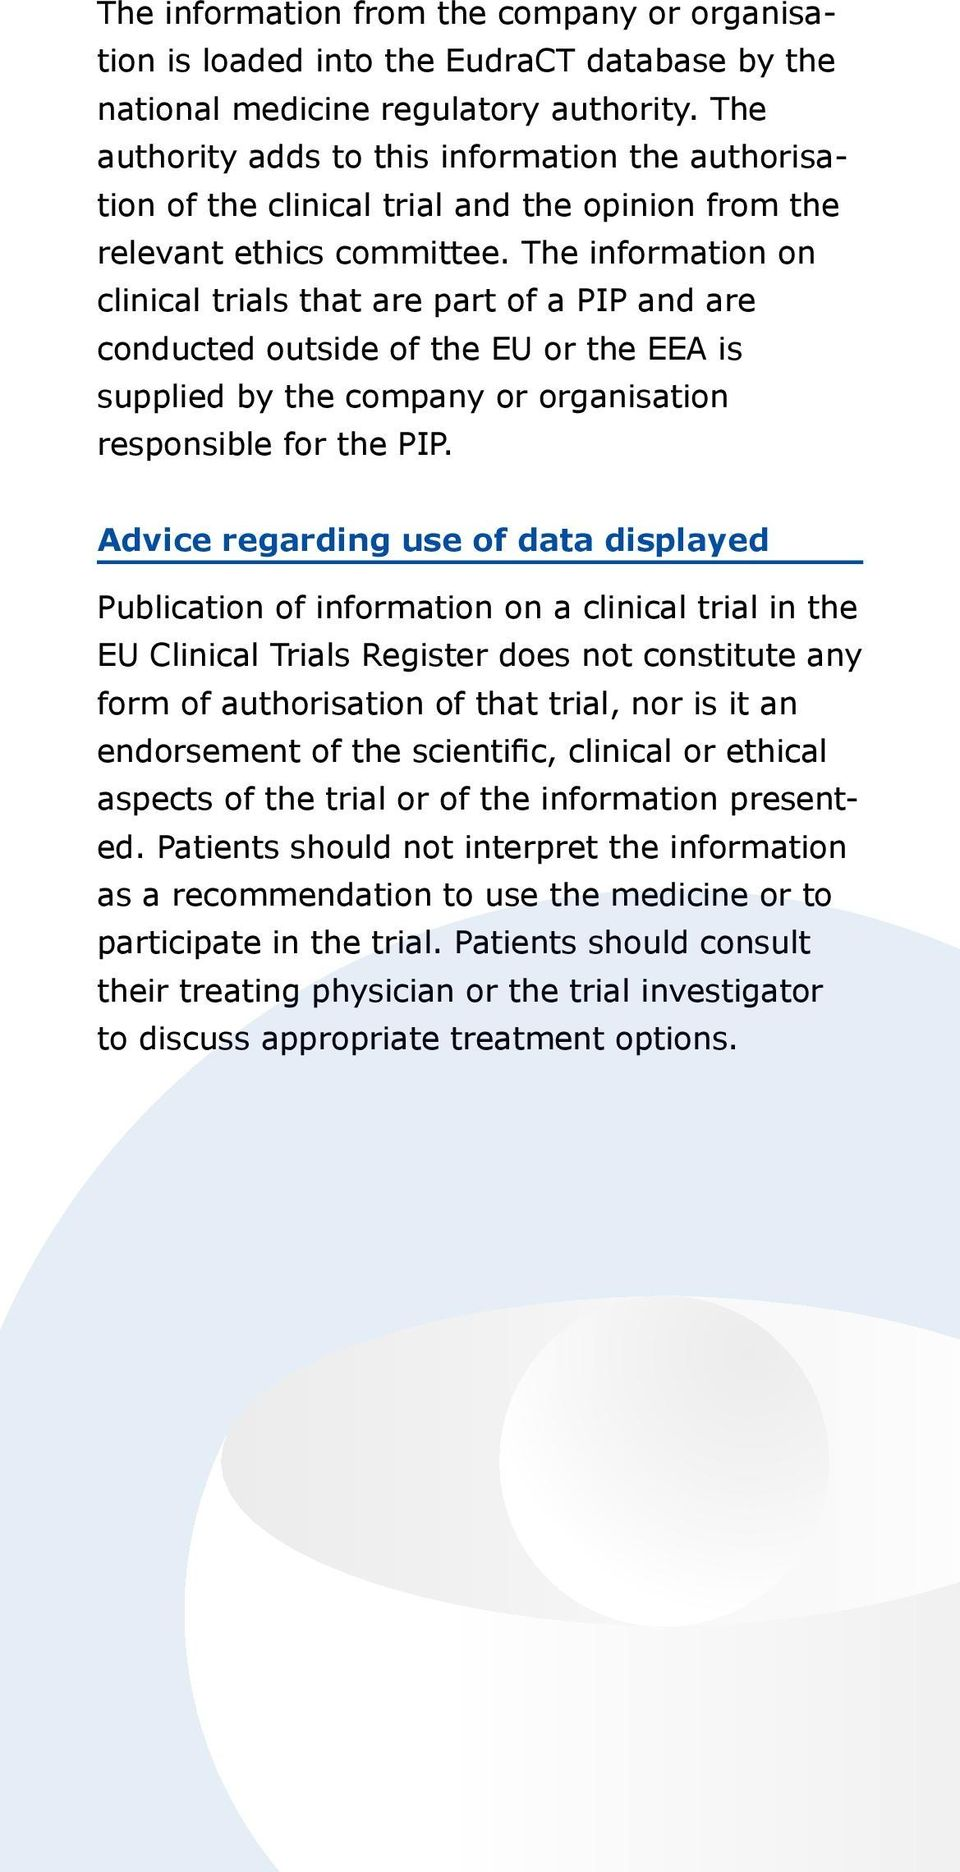 The information on clinical trials that are part of a PIP and are conducted outside of the EU or the EEA is supplied by the company or organisation responsible for the PIP.